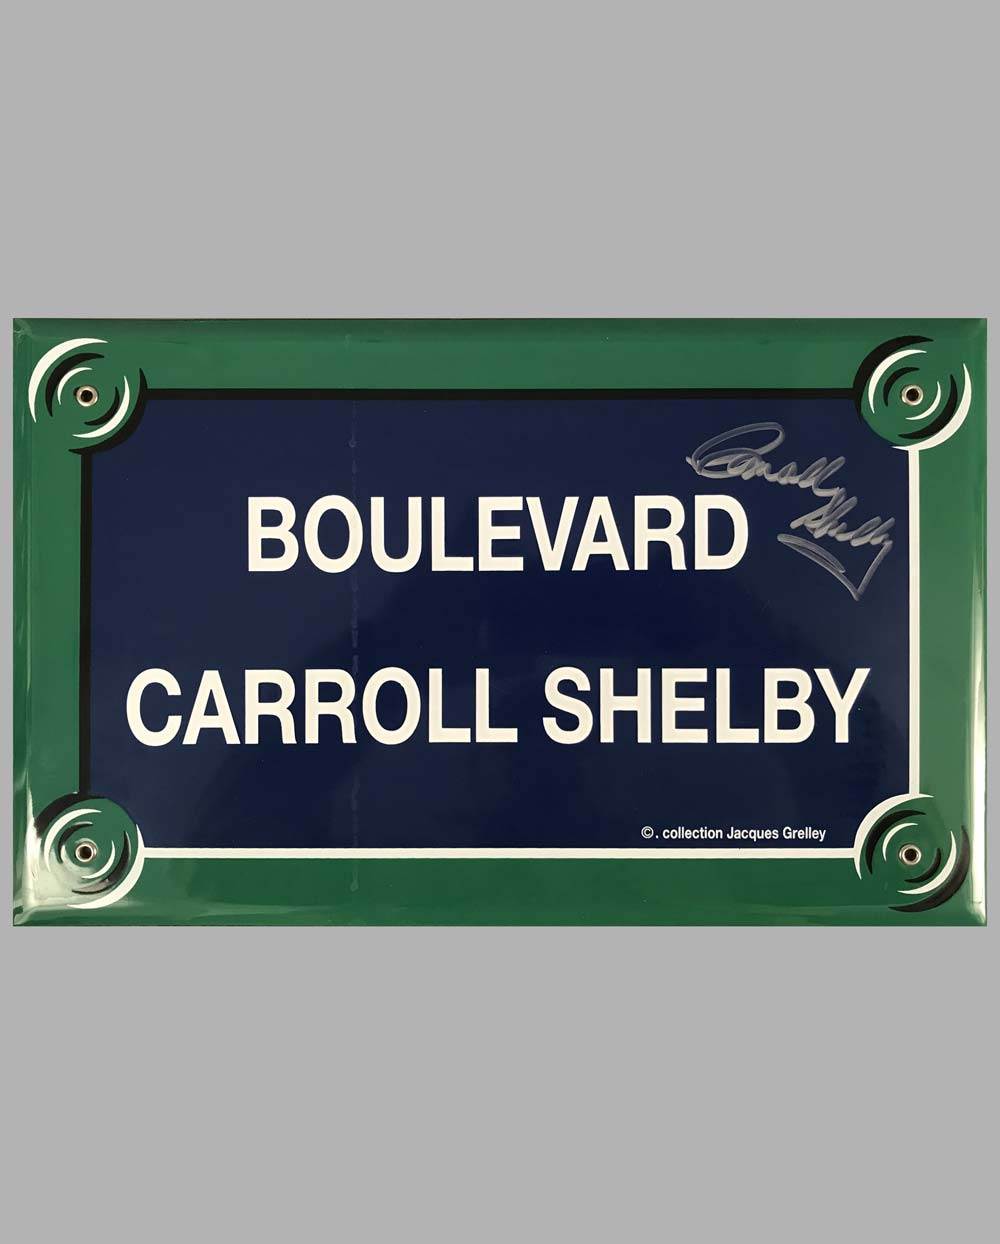 """Boulevard Carroll Shelby"" French enamel on metal street sign, autographed by Carroll Shelby"